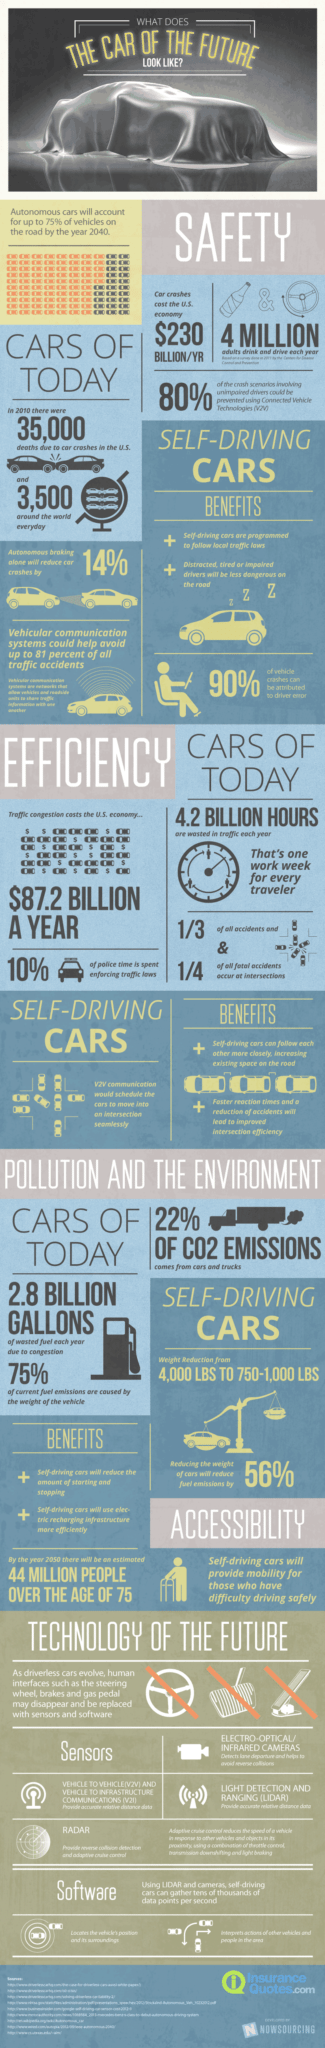 The Car of the Future [Infographic] 1